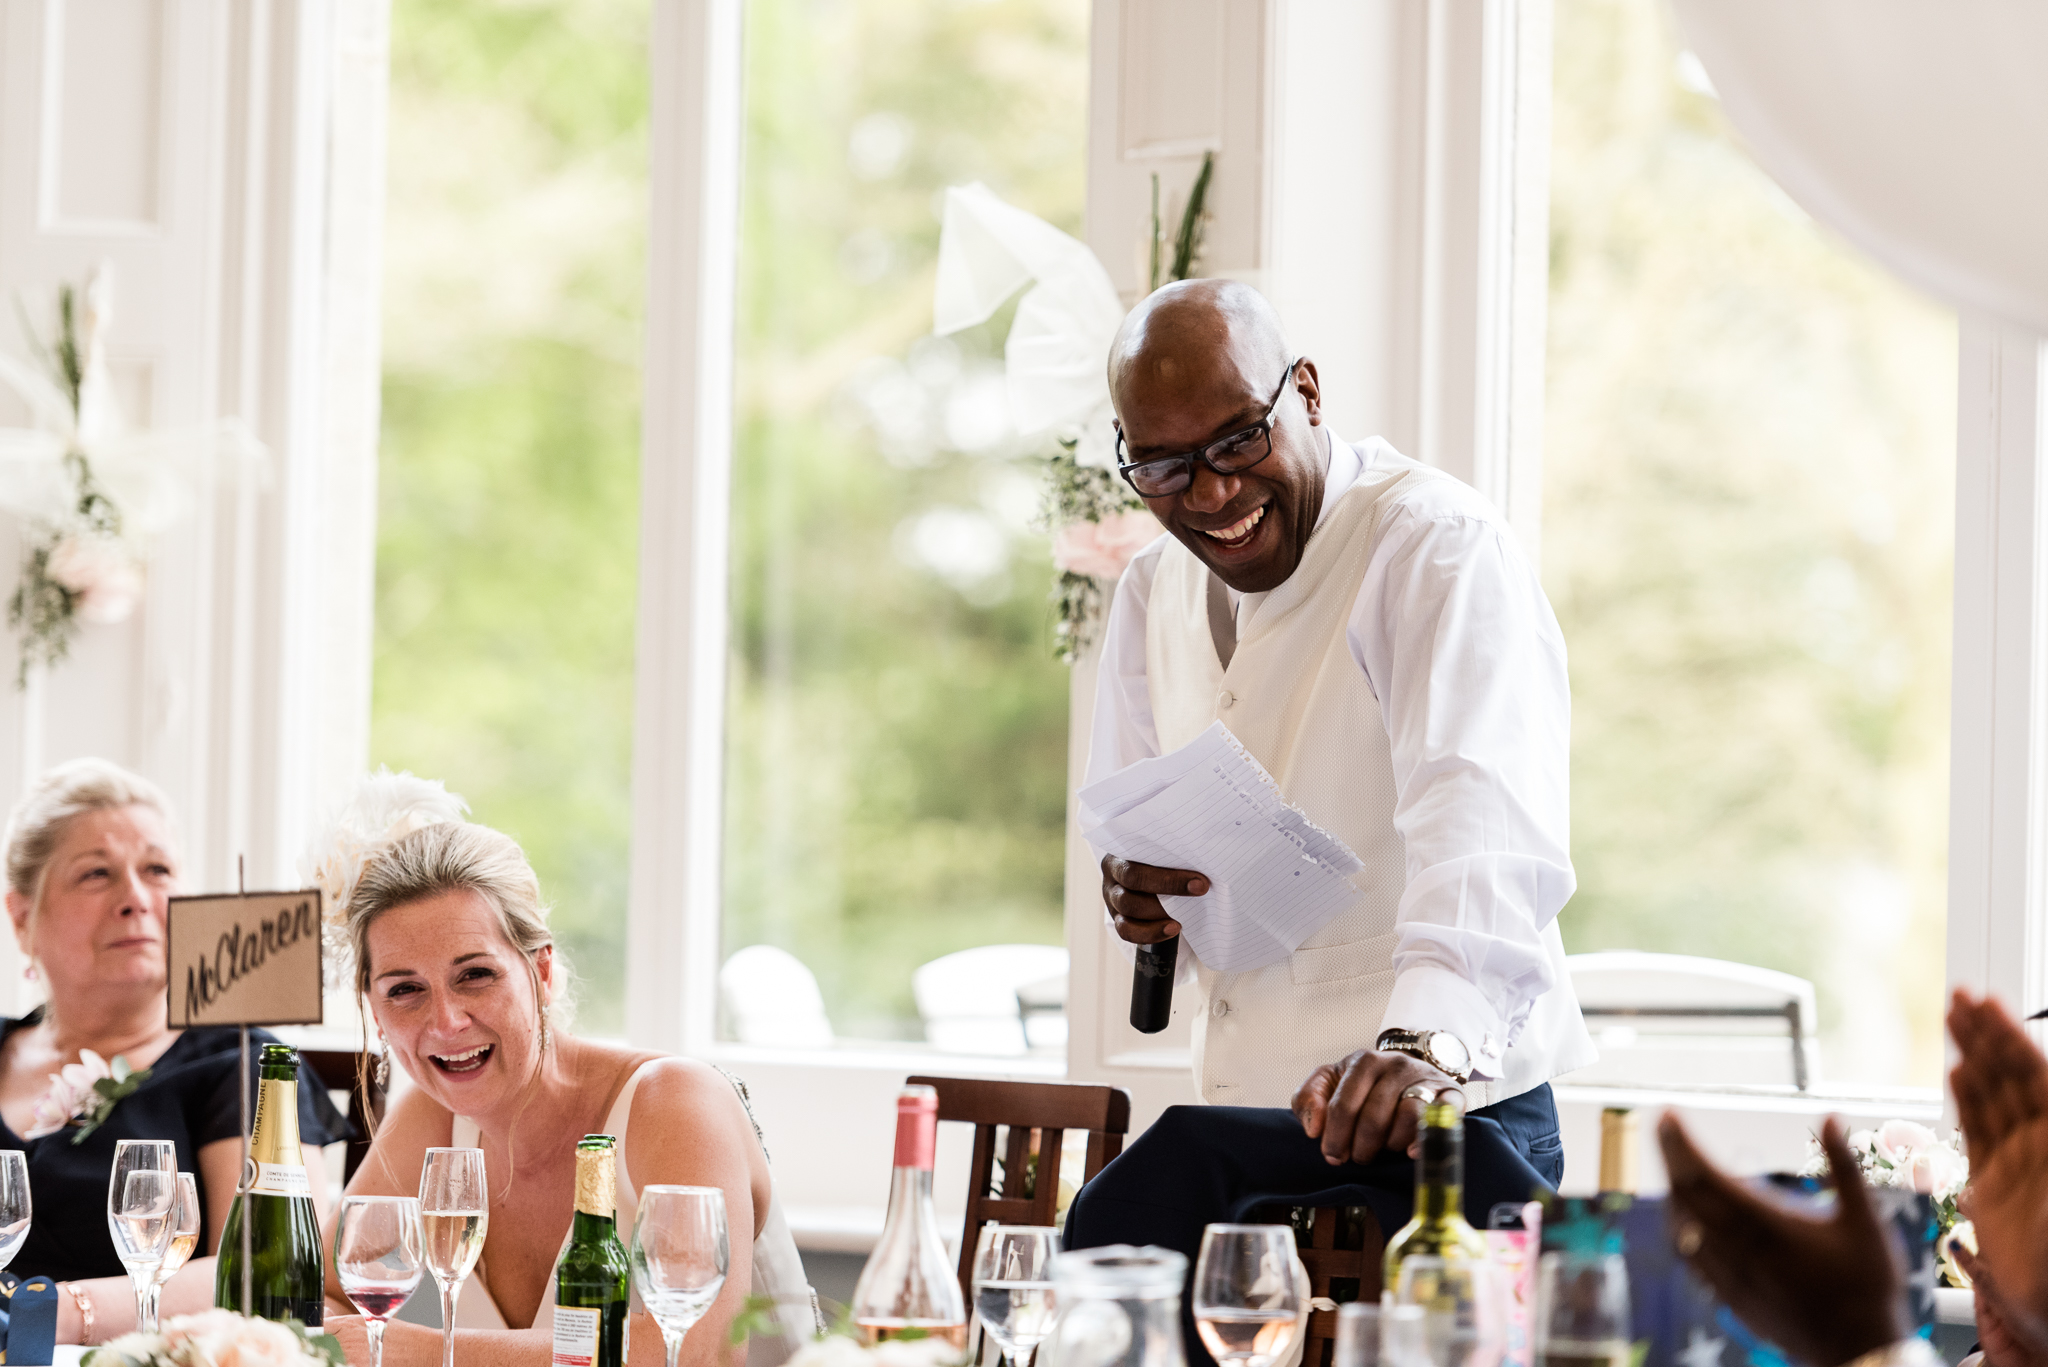 Stylish Easter Wedding at Pendrell Hall Country House Wedding Venue Staffordshire - Jenny Harper-43.jpg